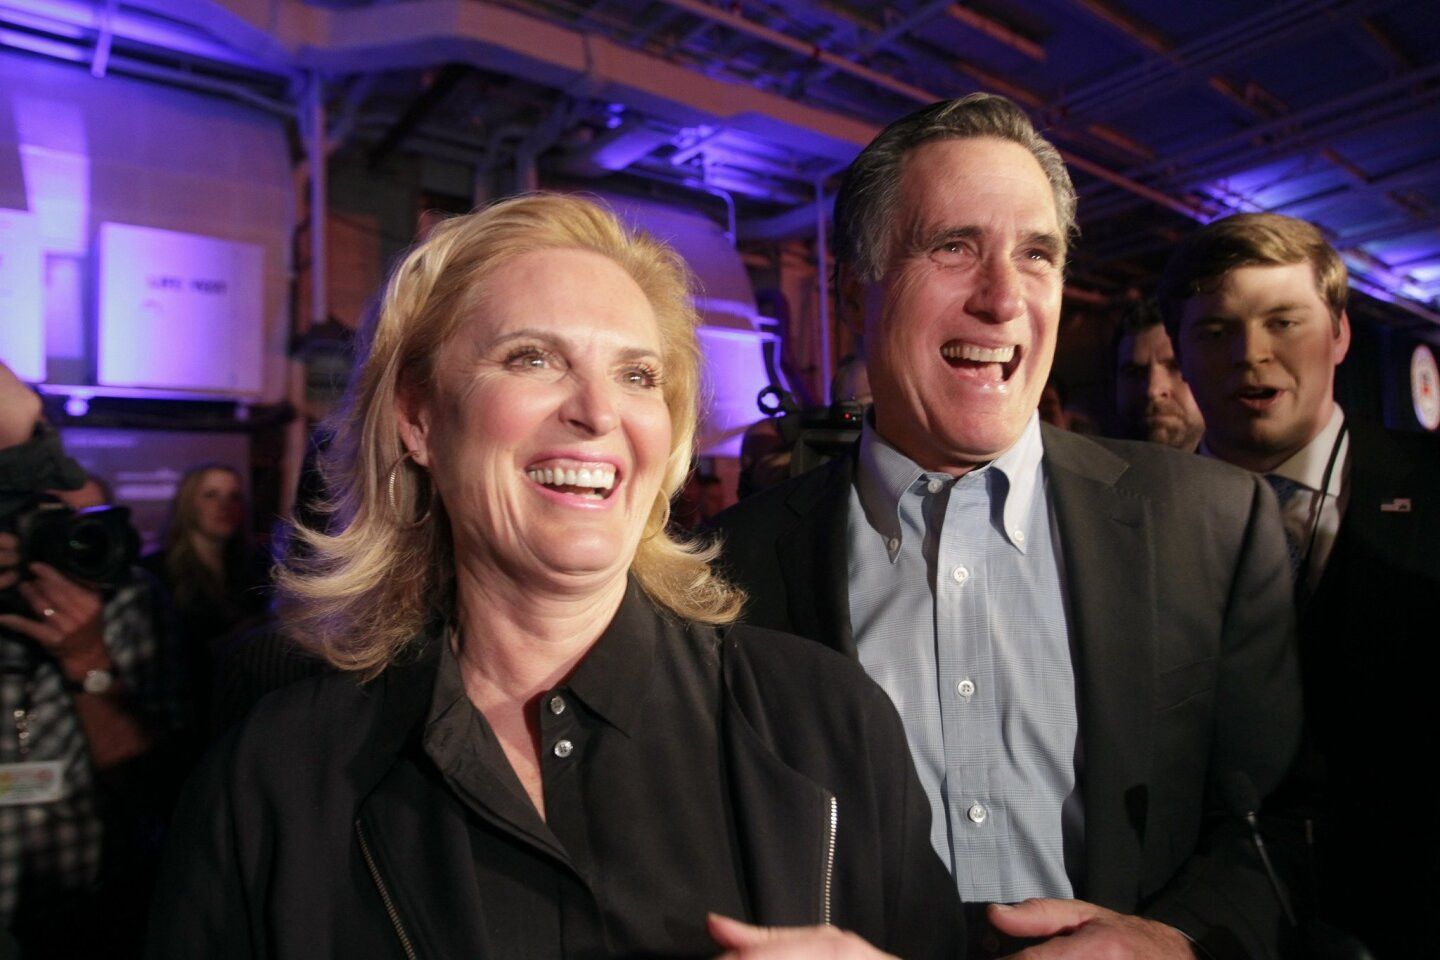 Mitt Romney, the 2012 Republican nominee for President, and his wife Ann Romney mingle with the crowd after Mitt Romney spoke.